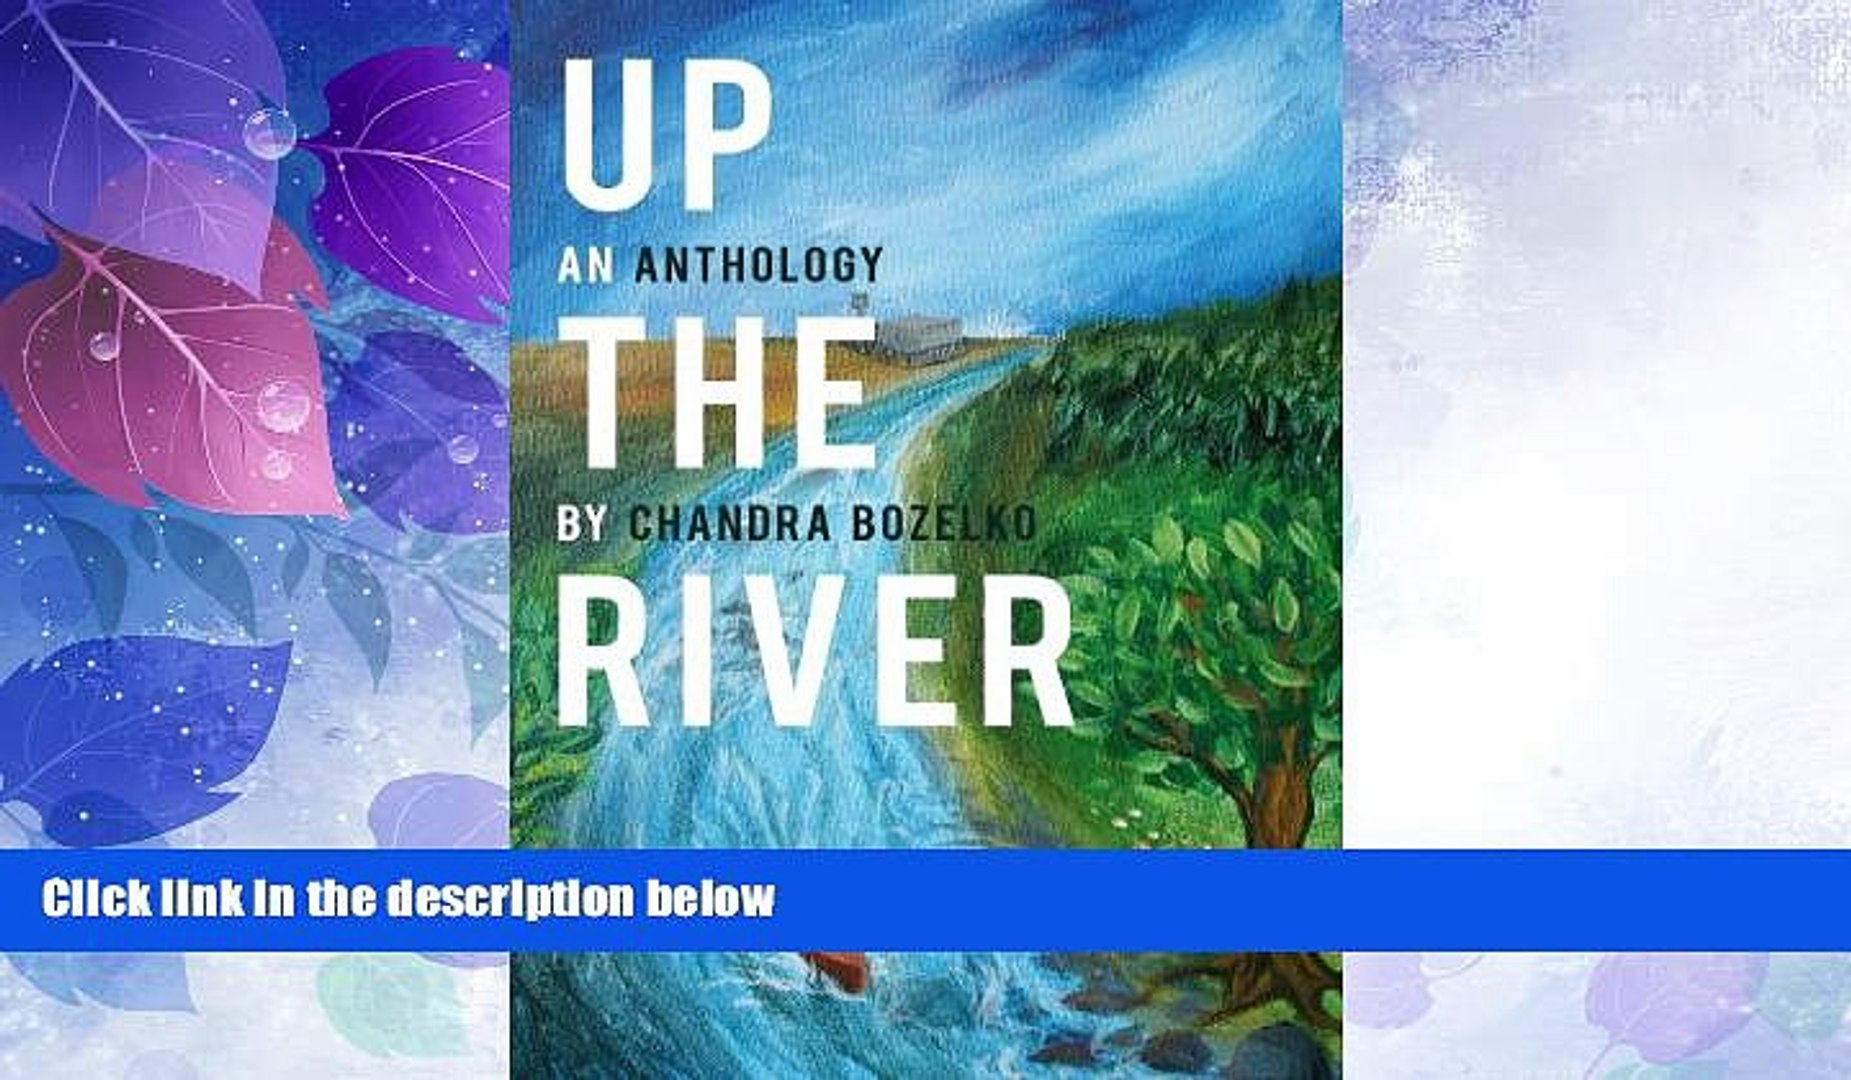 The American Canoe Associations River Safety Anthology